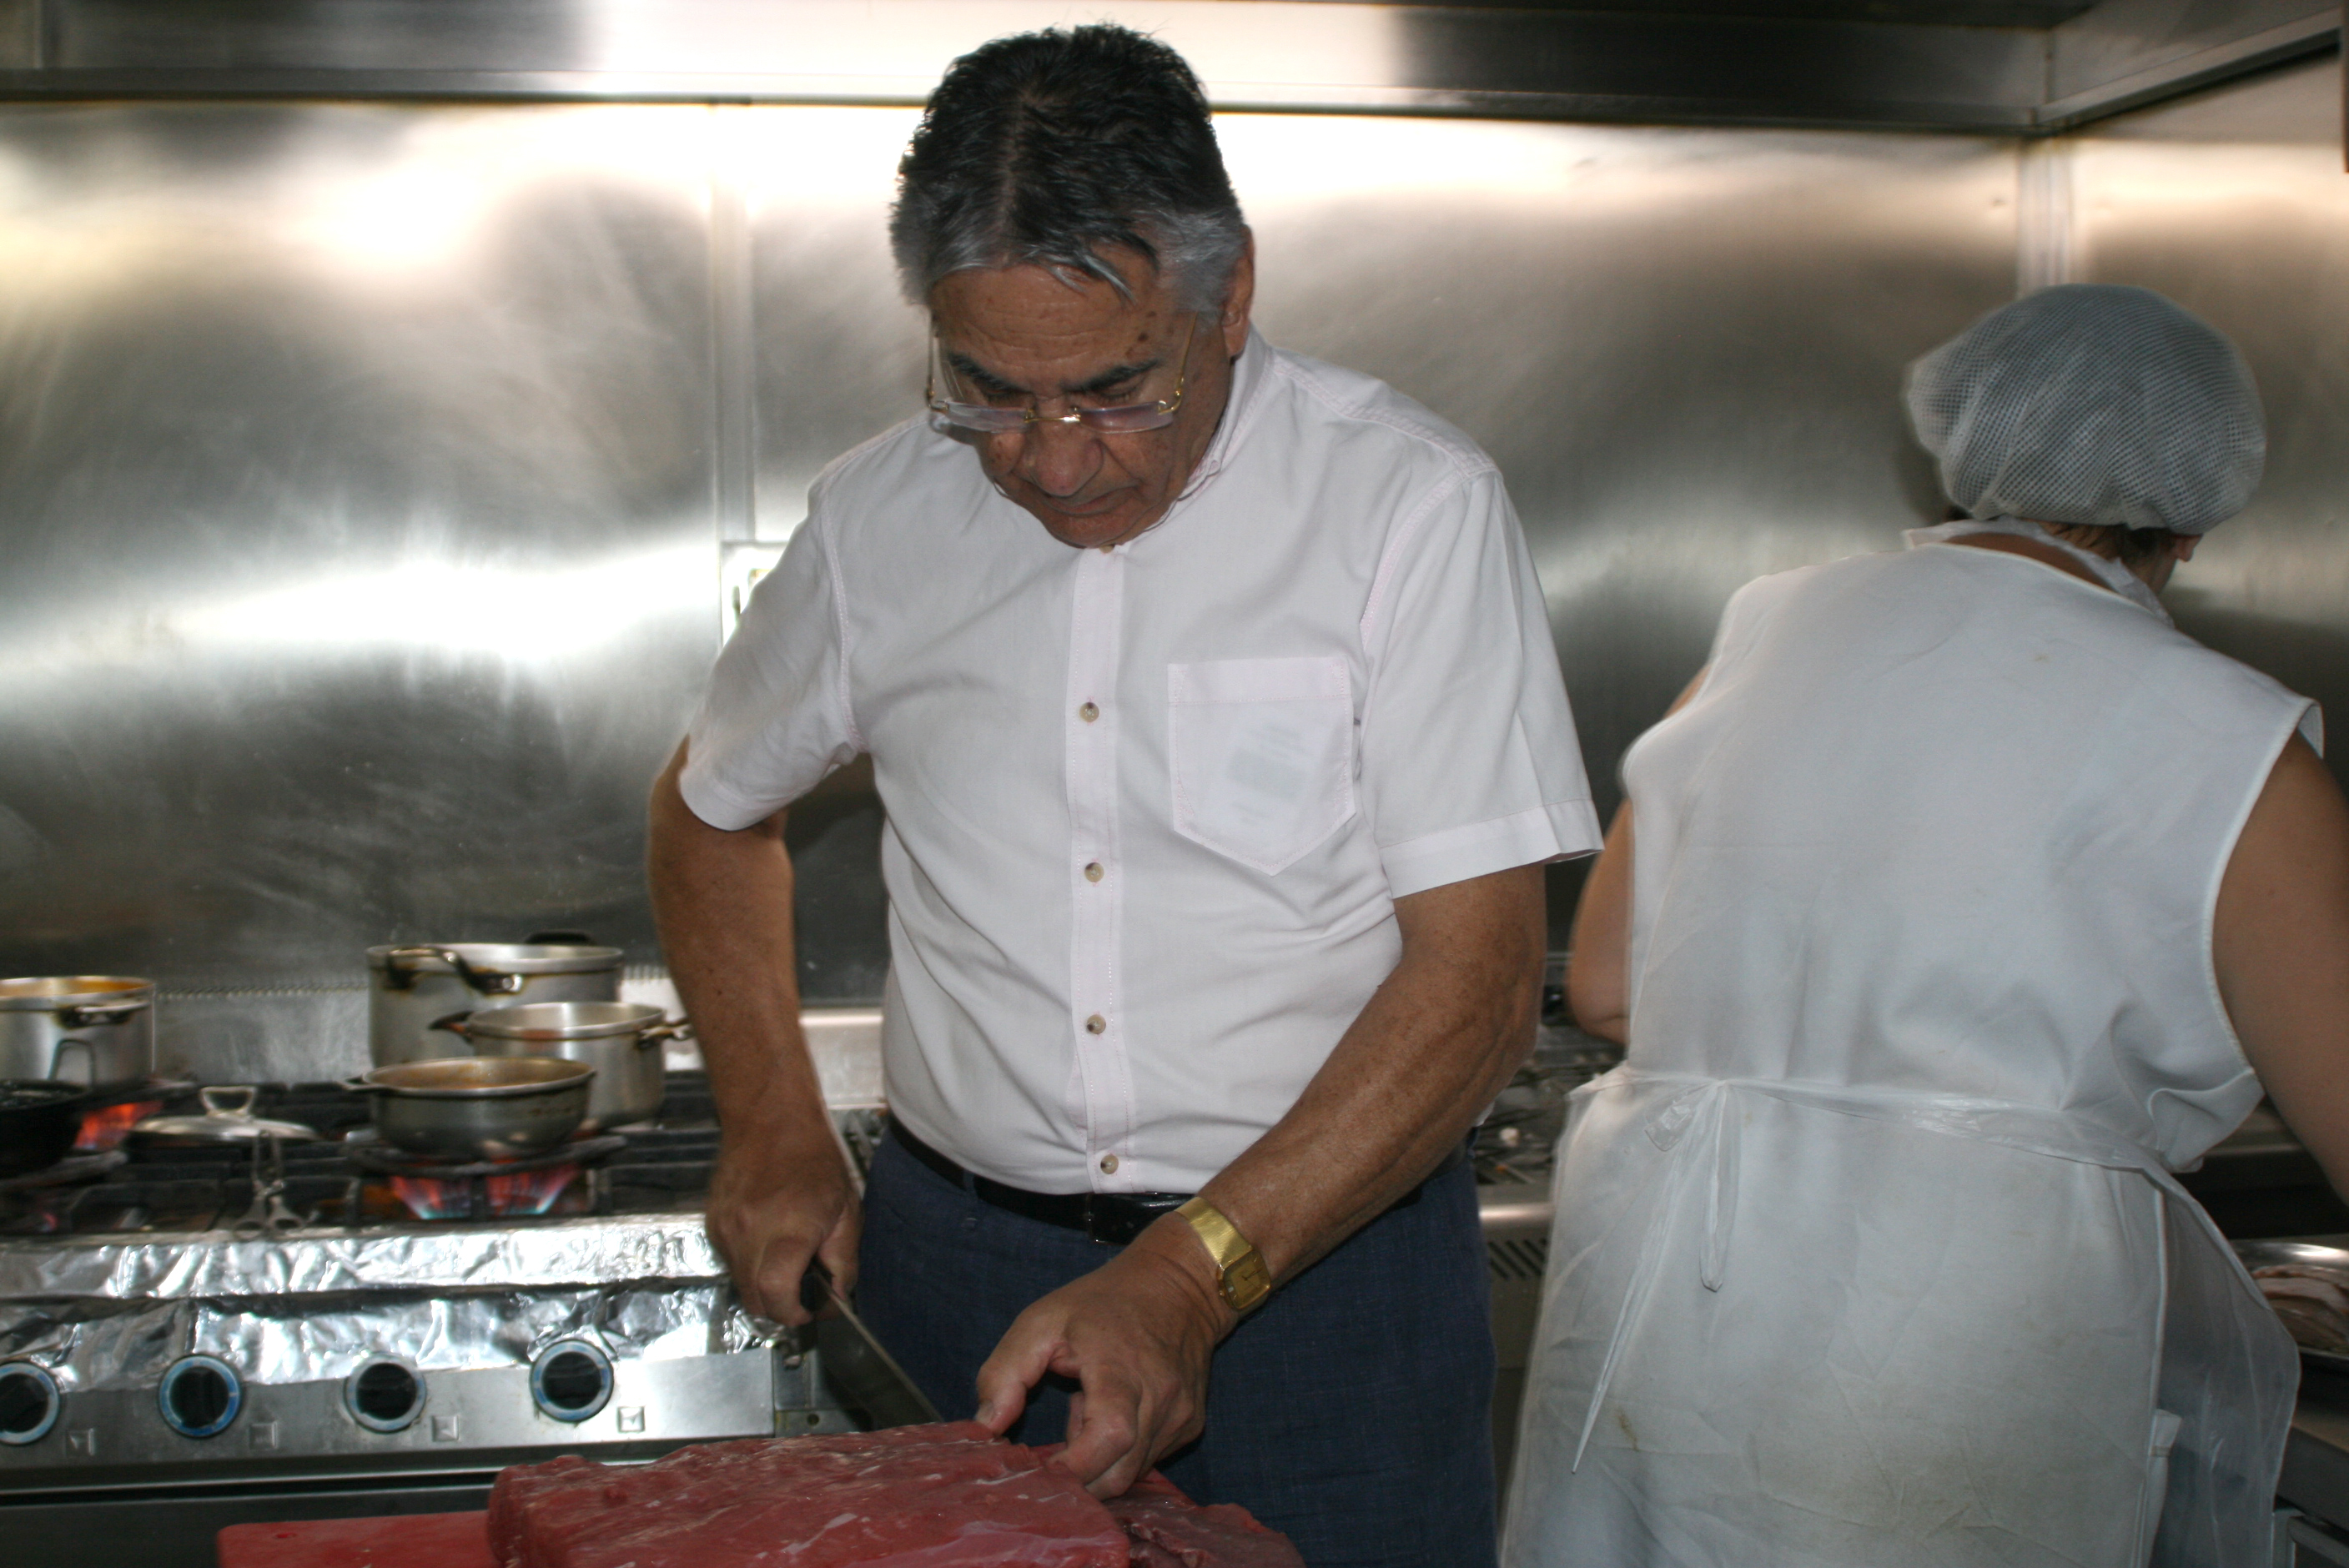 Restaurant Marisqueira Carvi in Portimao - kitchen: Carlos, the boss himself preparing the meat